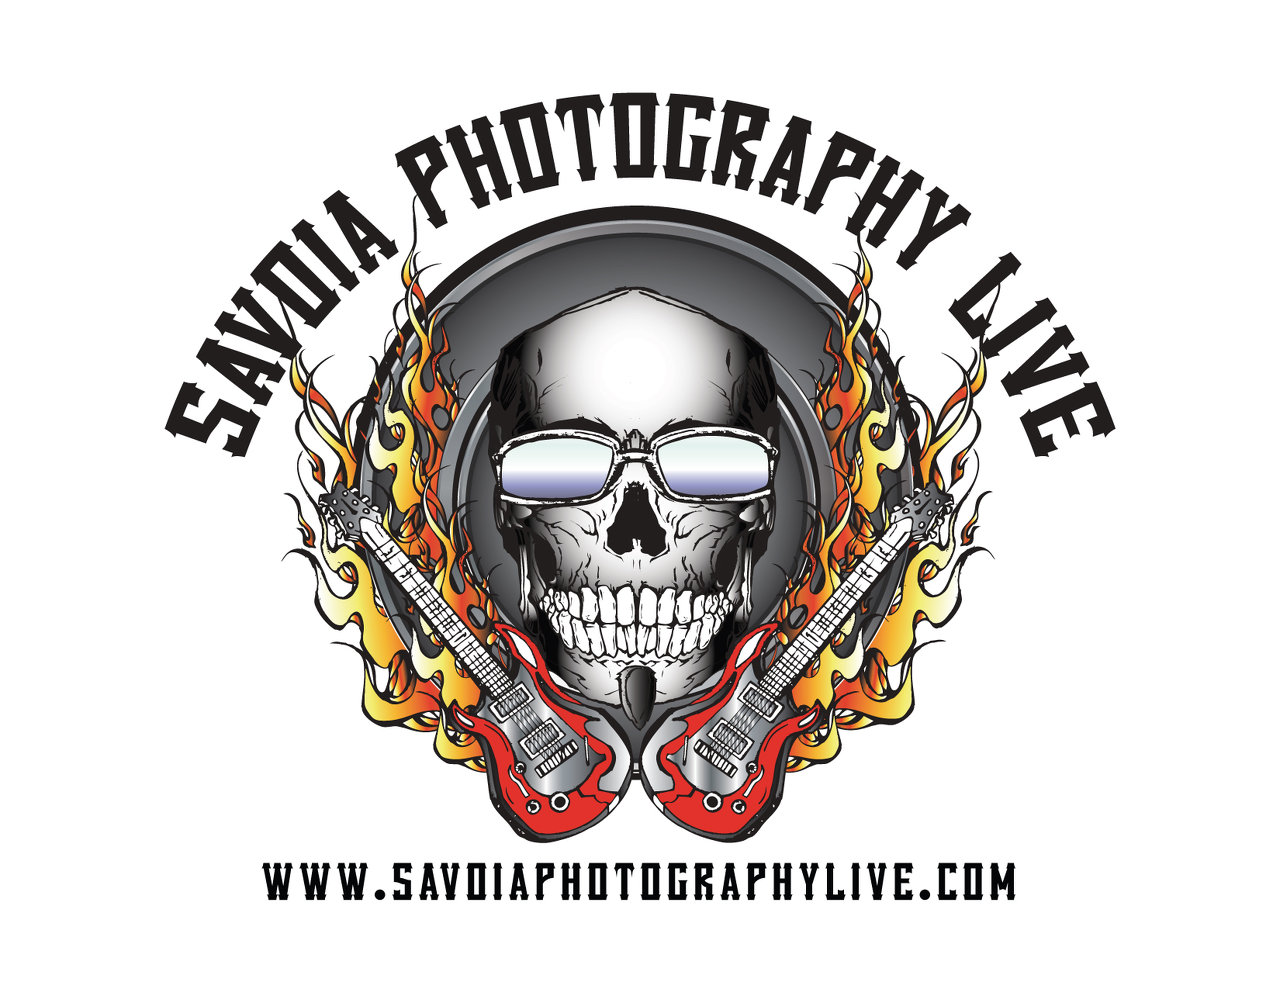 Savoia Photography Live